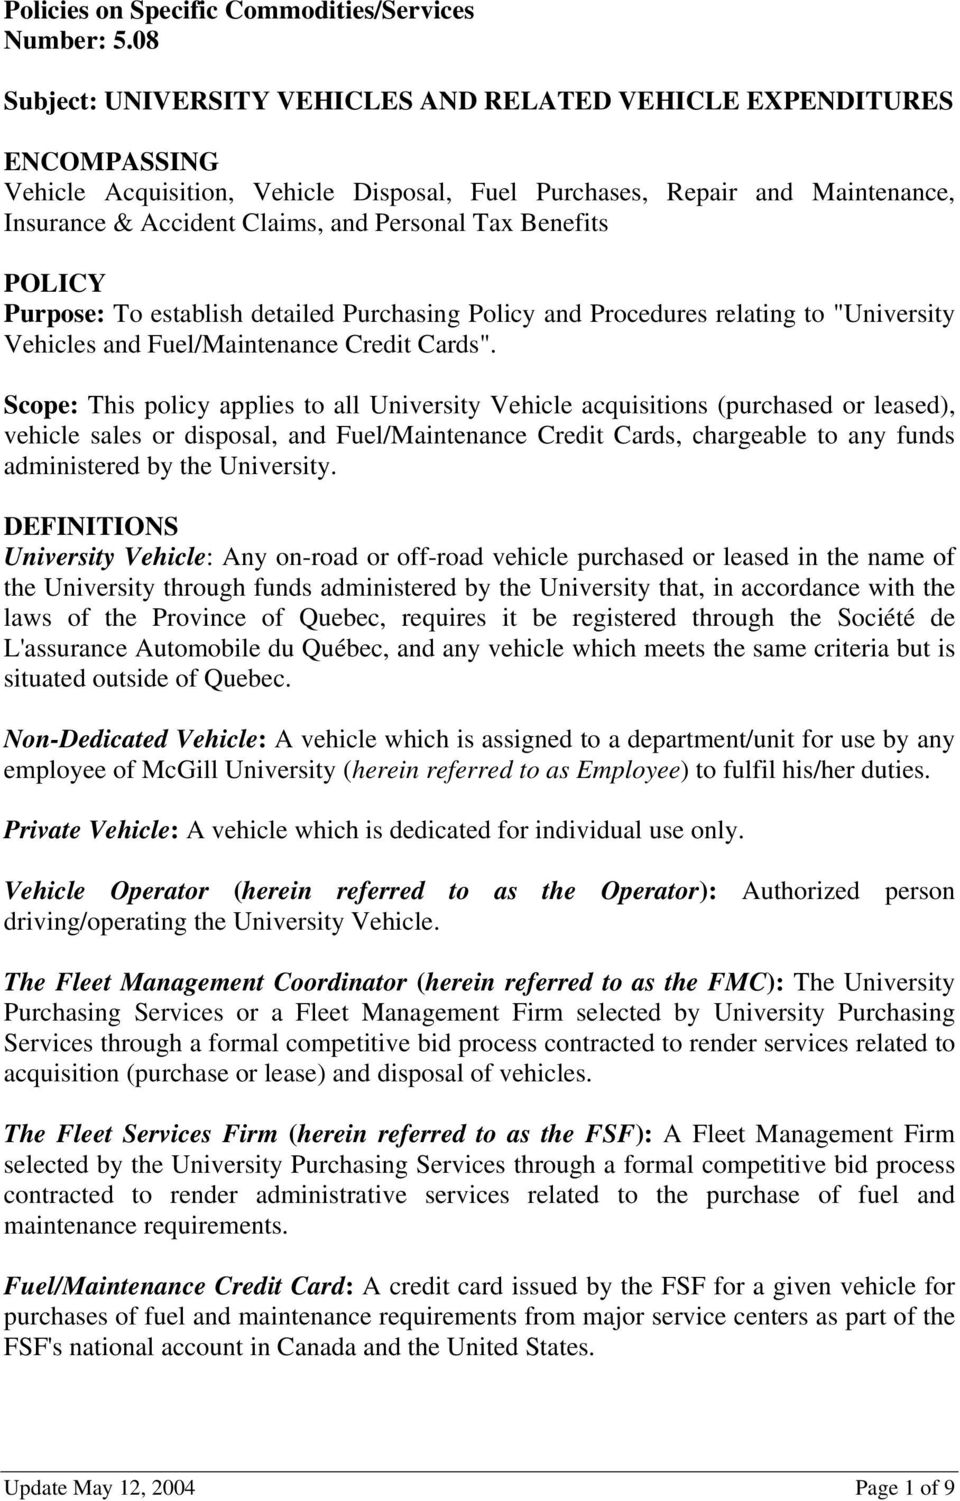 "Tax Benefits POLICY Purpose: To establish detailed Purchasing Policy and Procedures relating to ""University Vehicles and Fuel/Maintenance Credit Cards""."